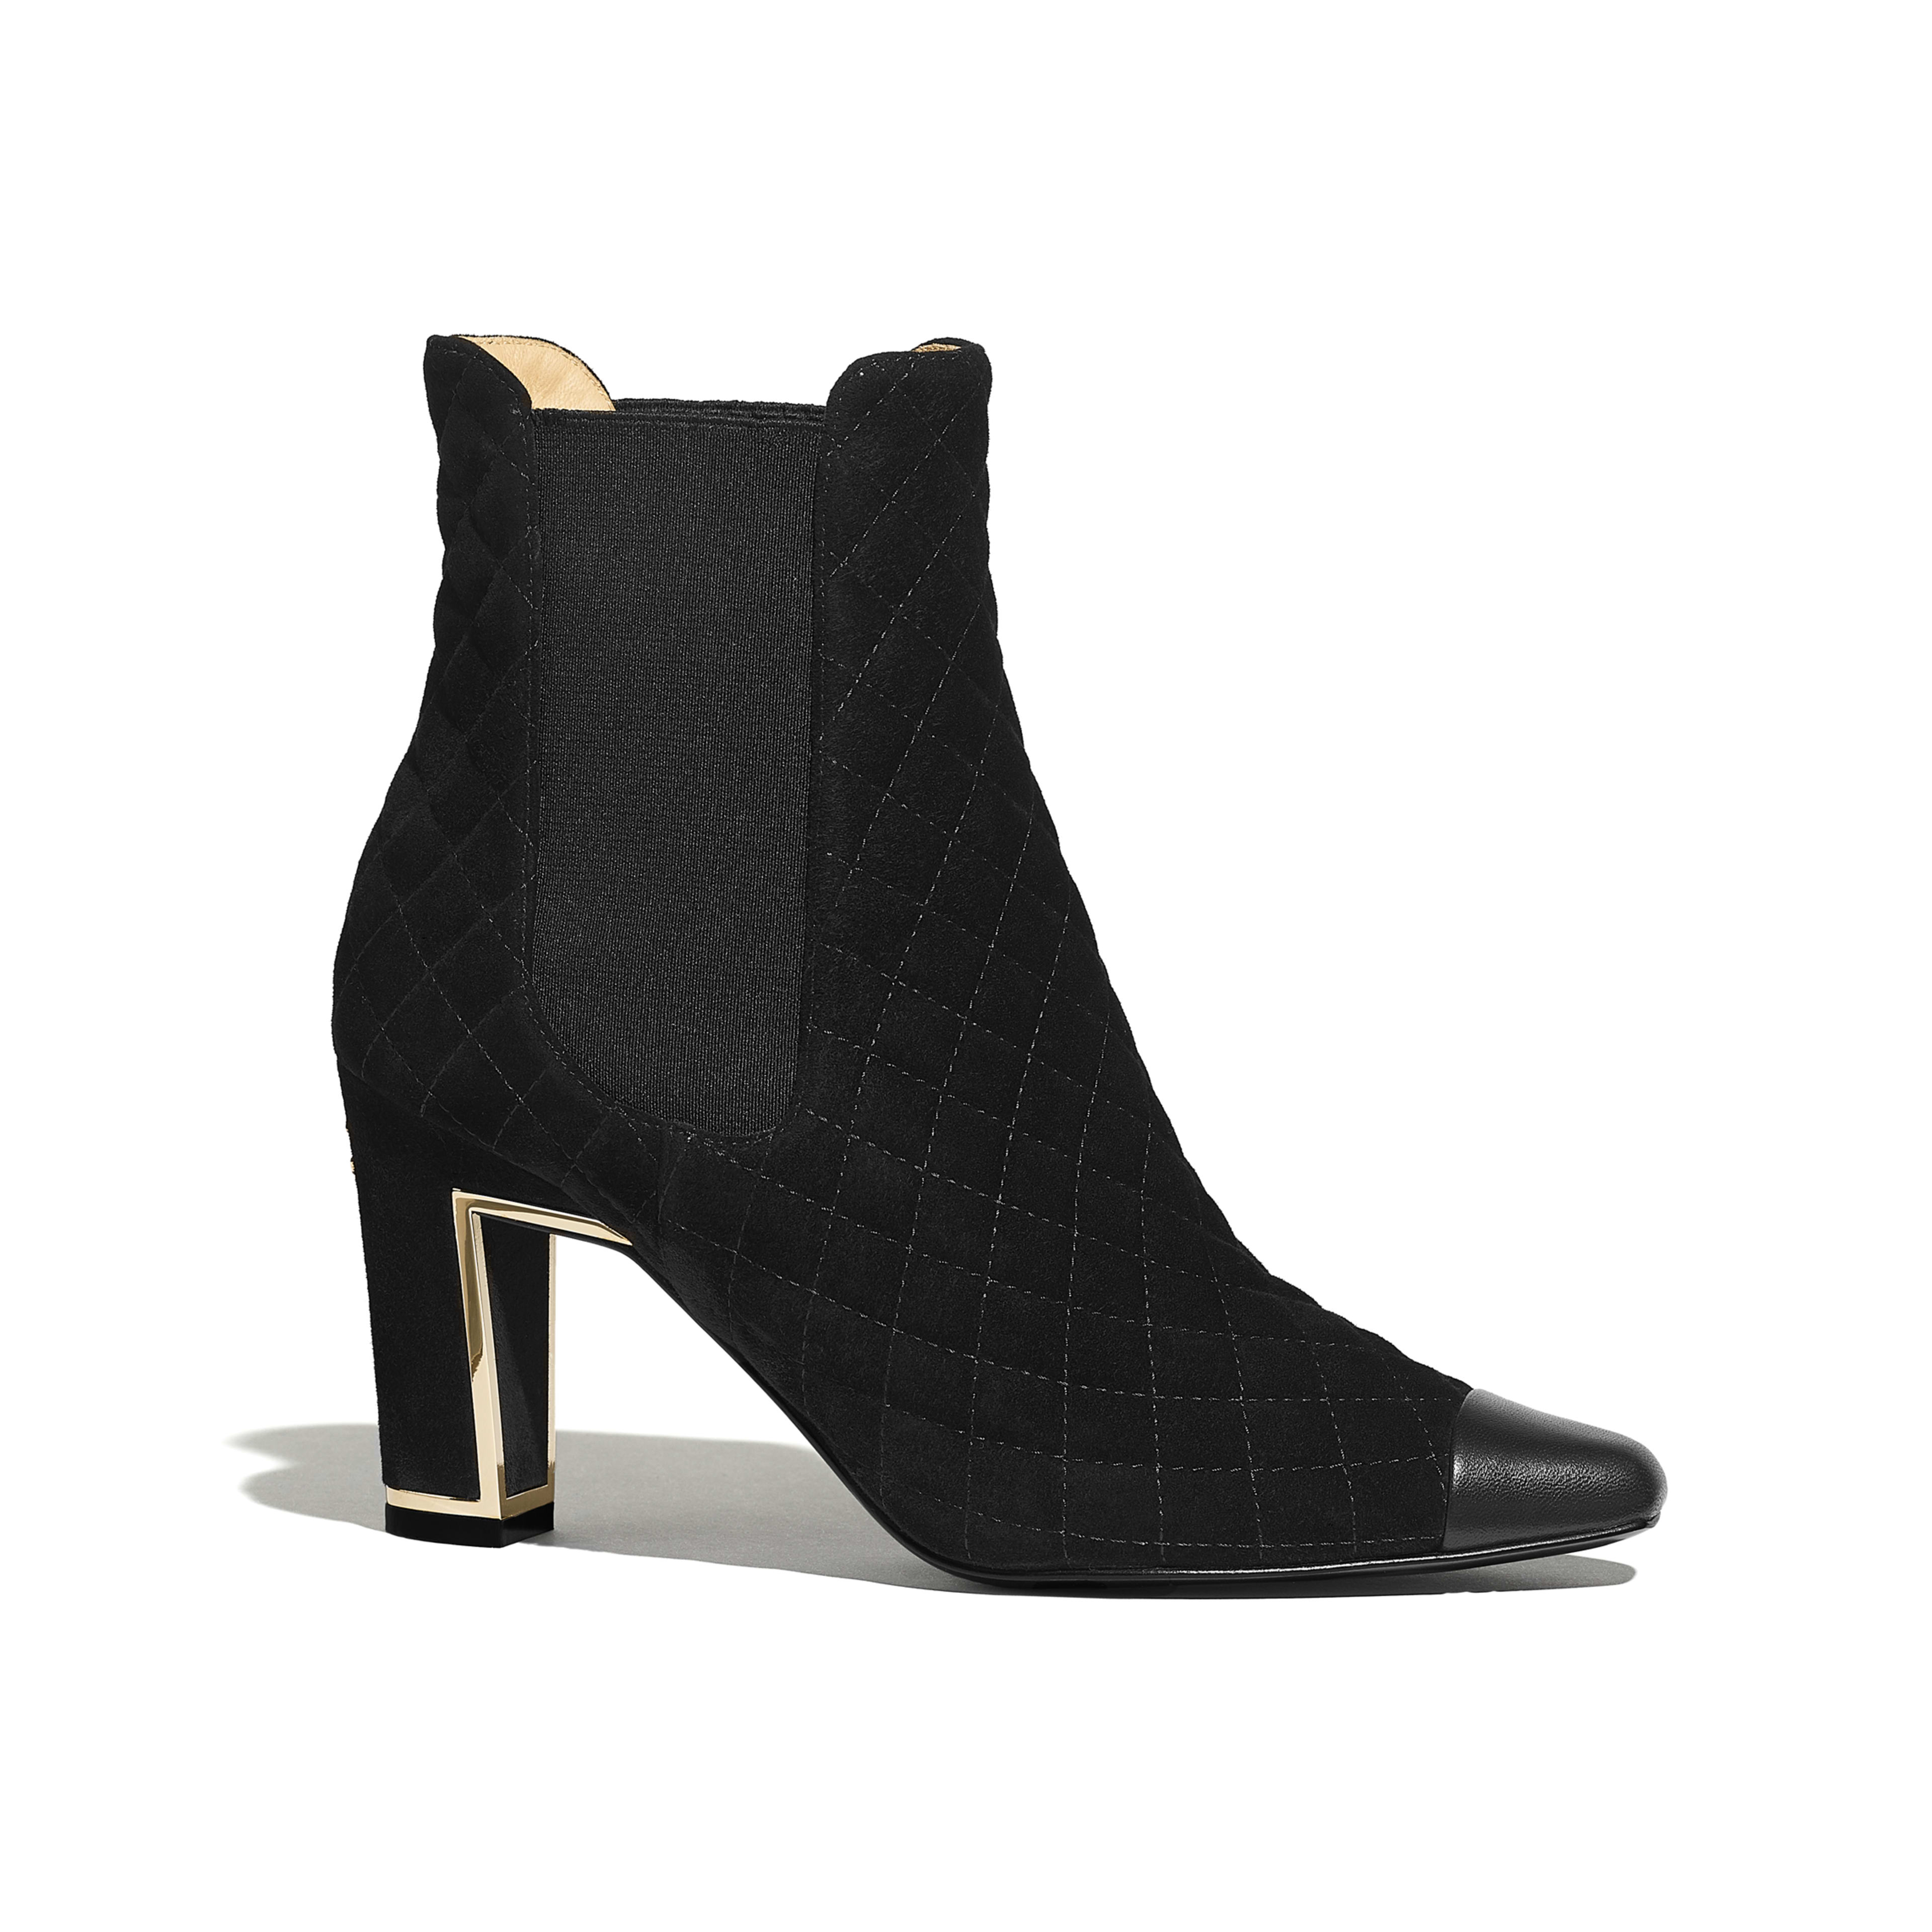 Ankle Boots - Black - Suede Calfskin & Lambskin - Default view - see full sized version